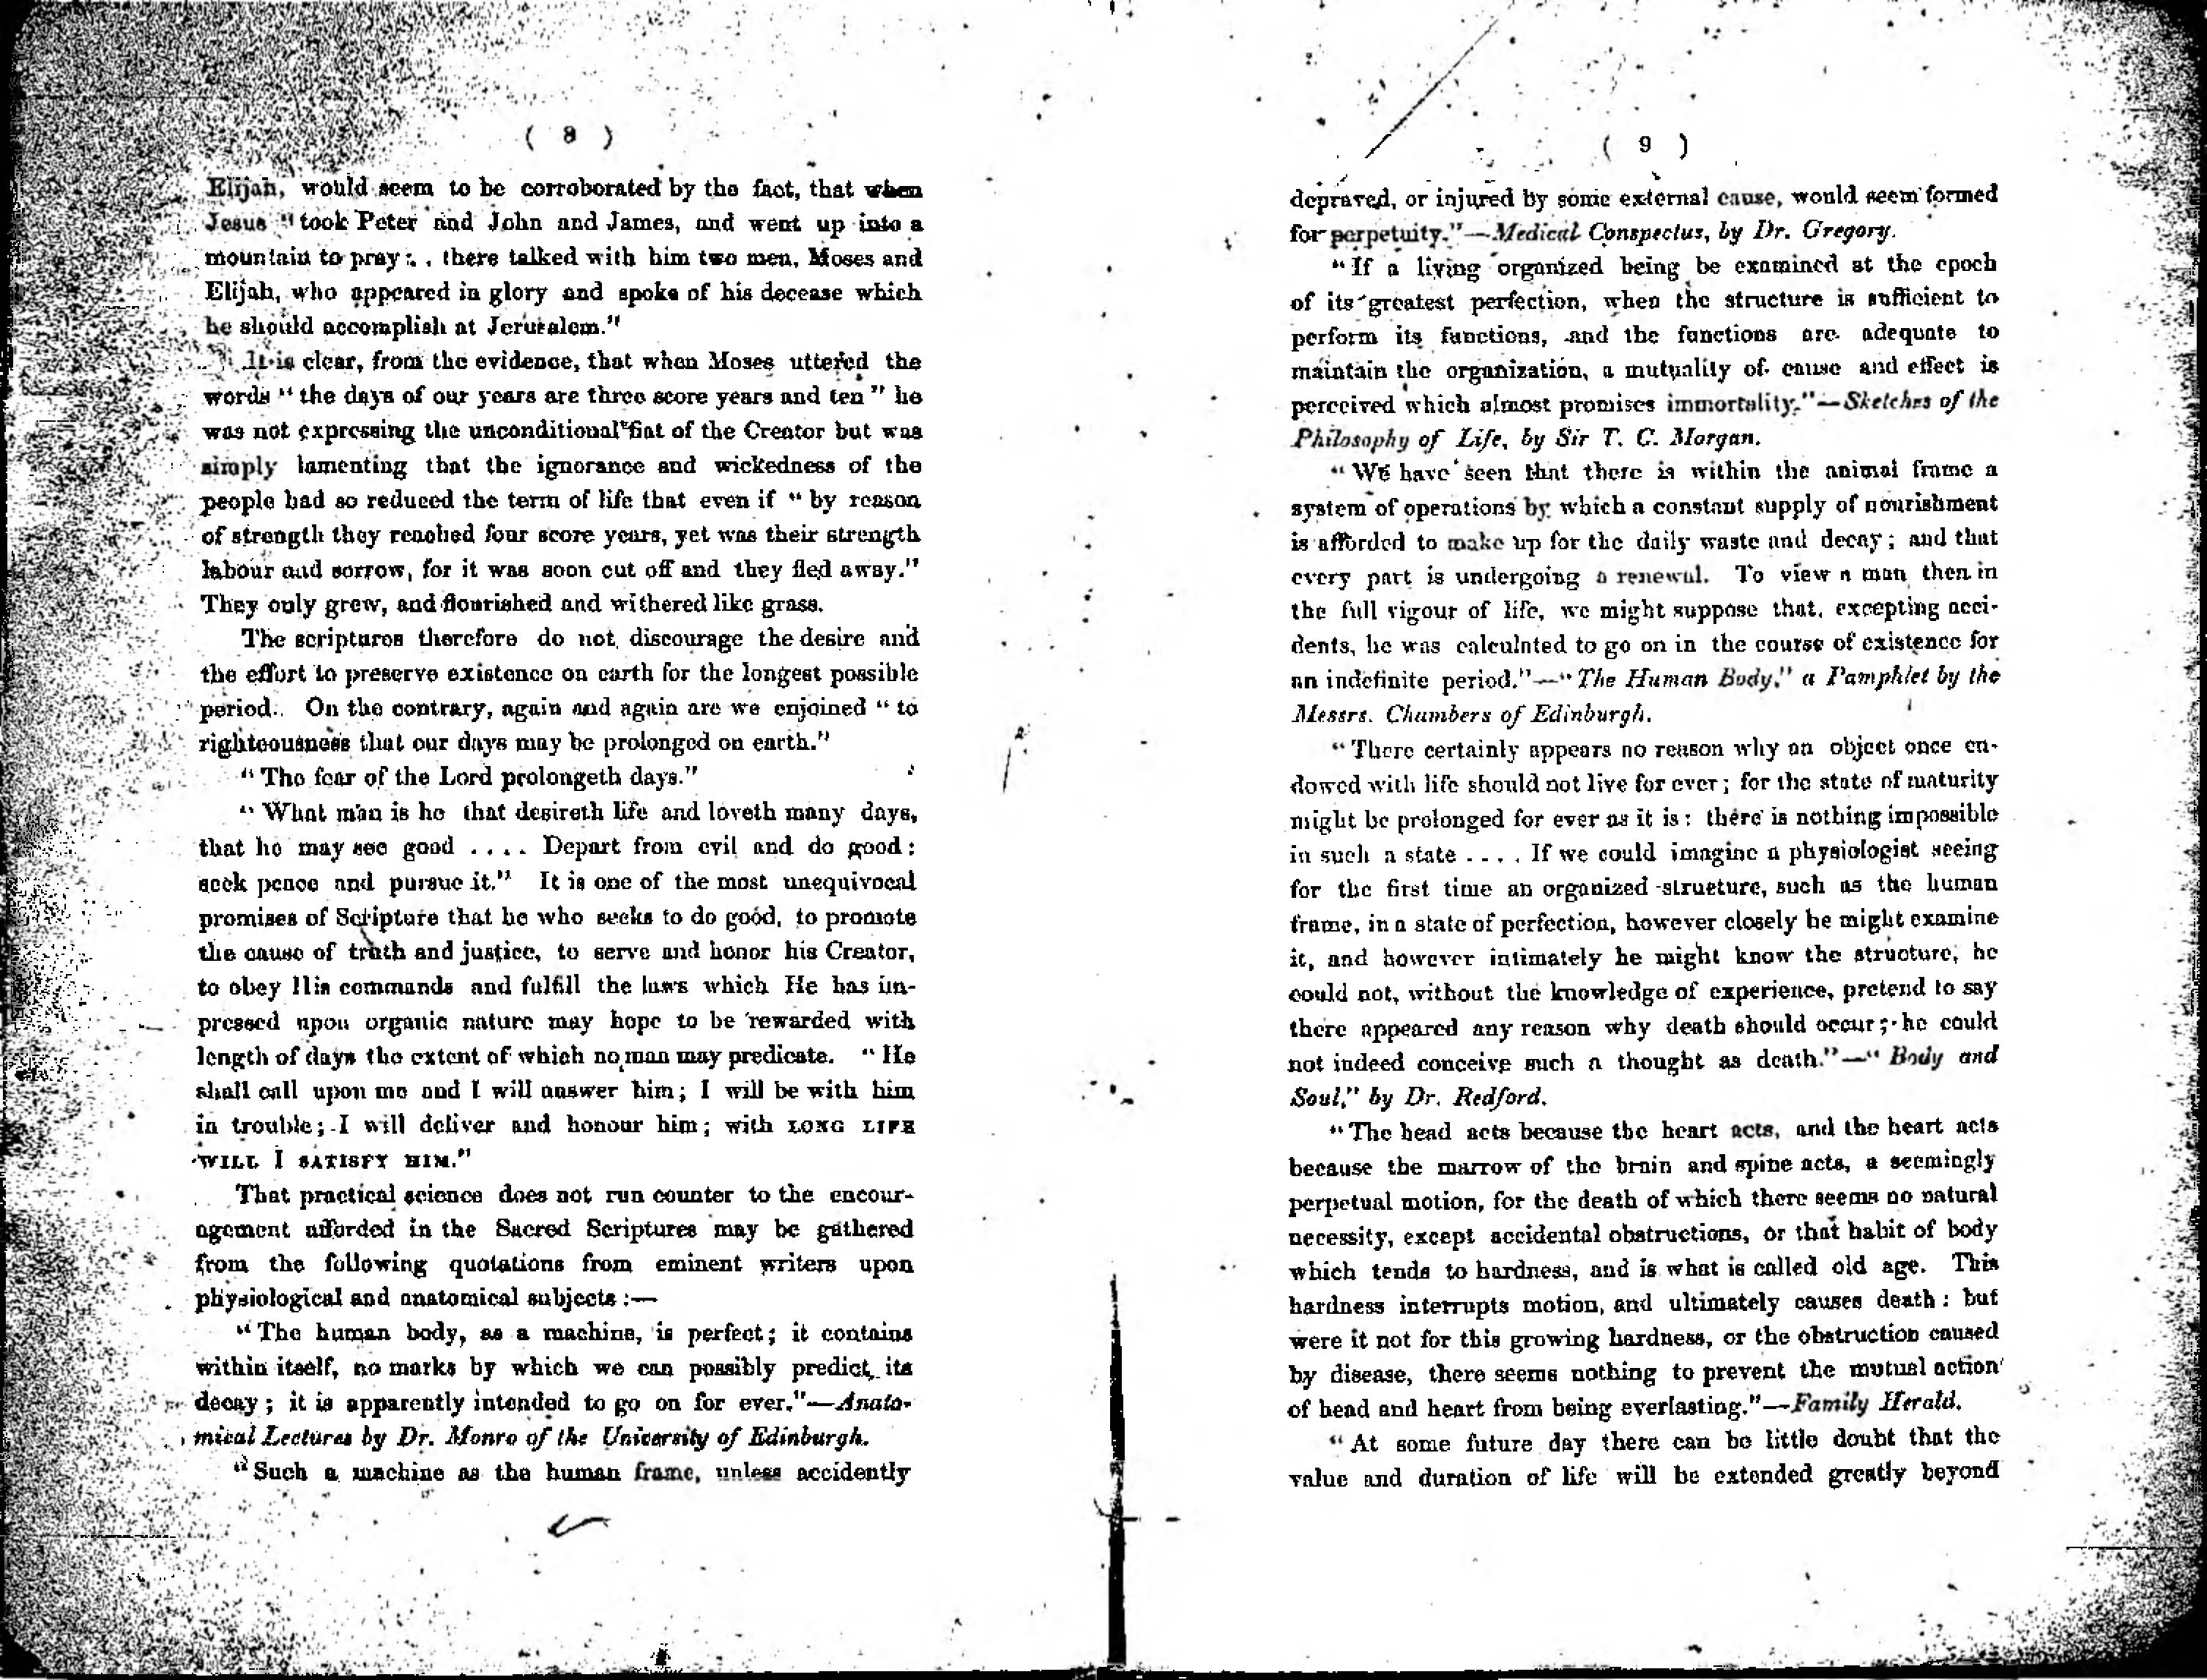 file-page6